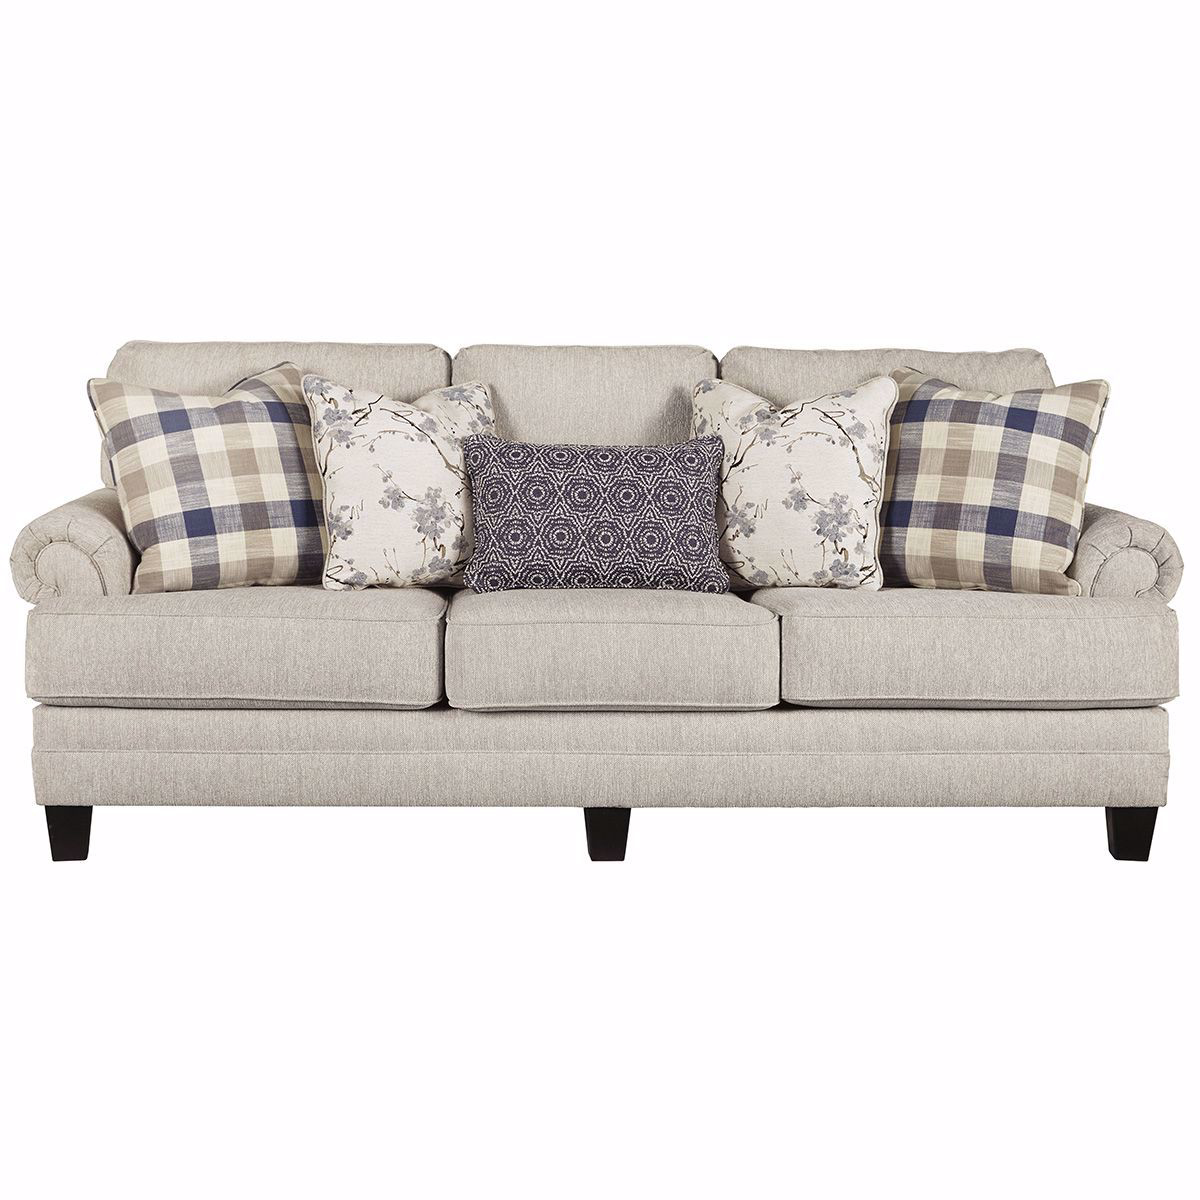 Picture of Dogwood Living Room Collection